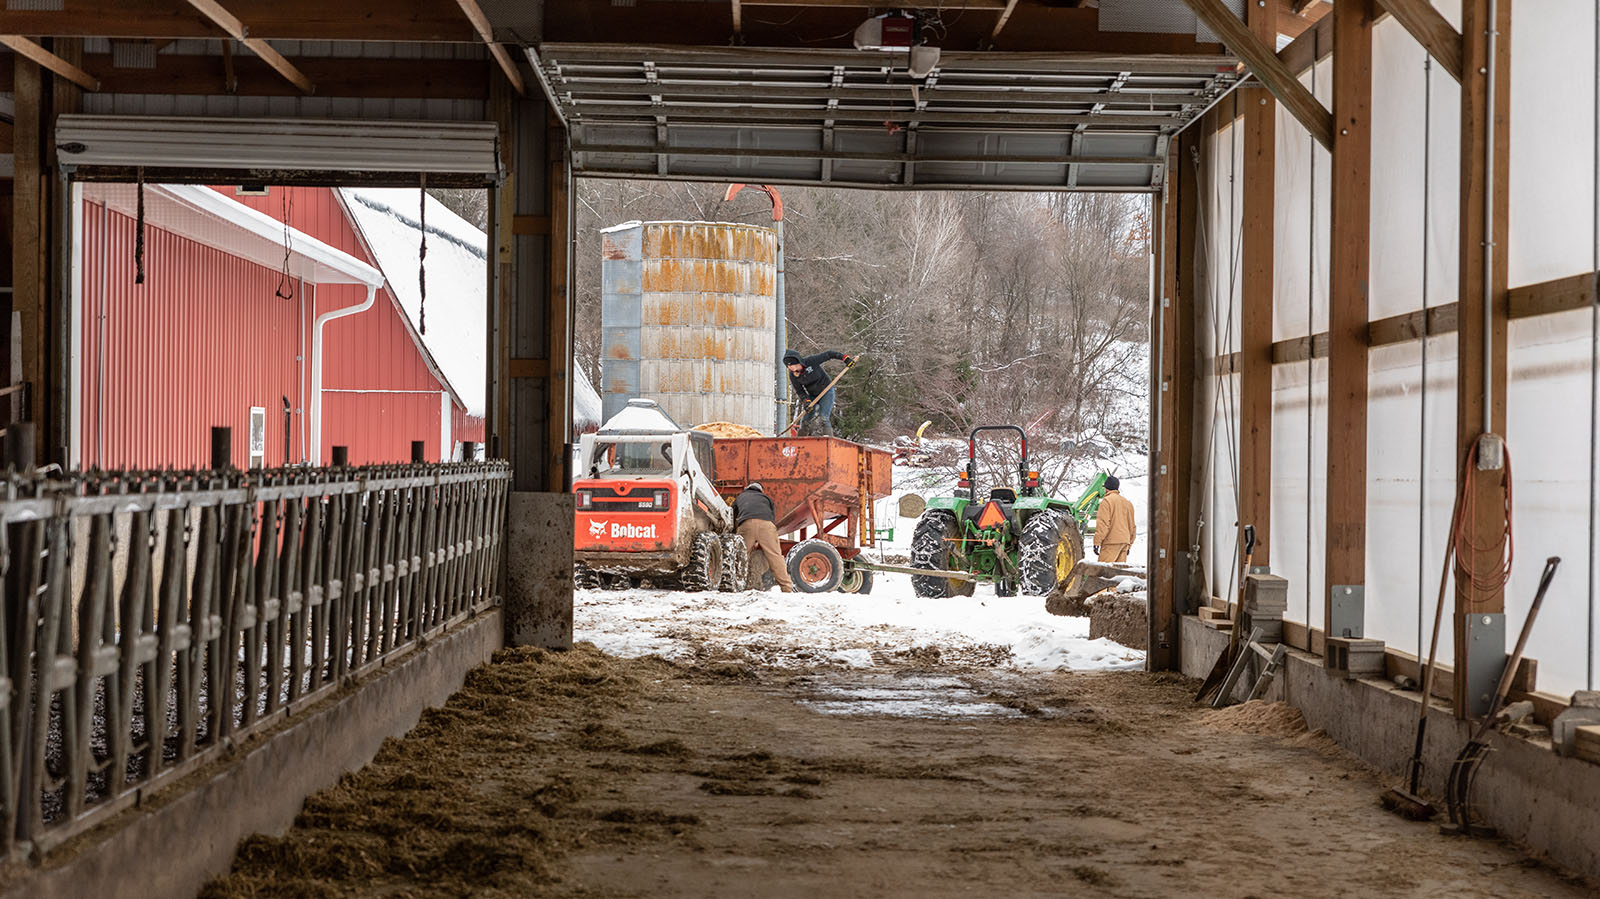 View from within the barn of farmers bringing a trailer close to the barn and standing on top to shovel bedding out.